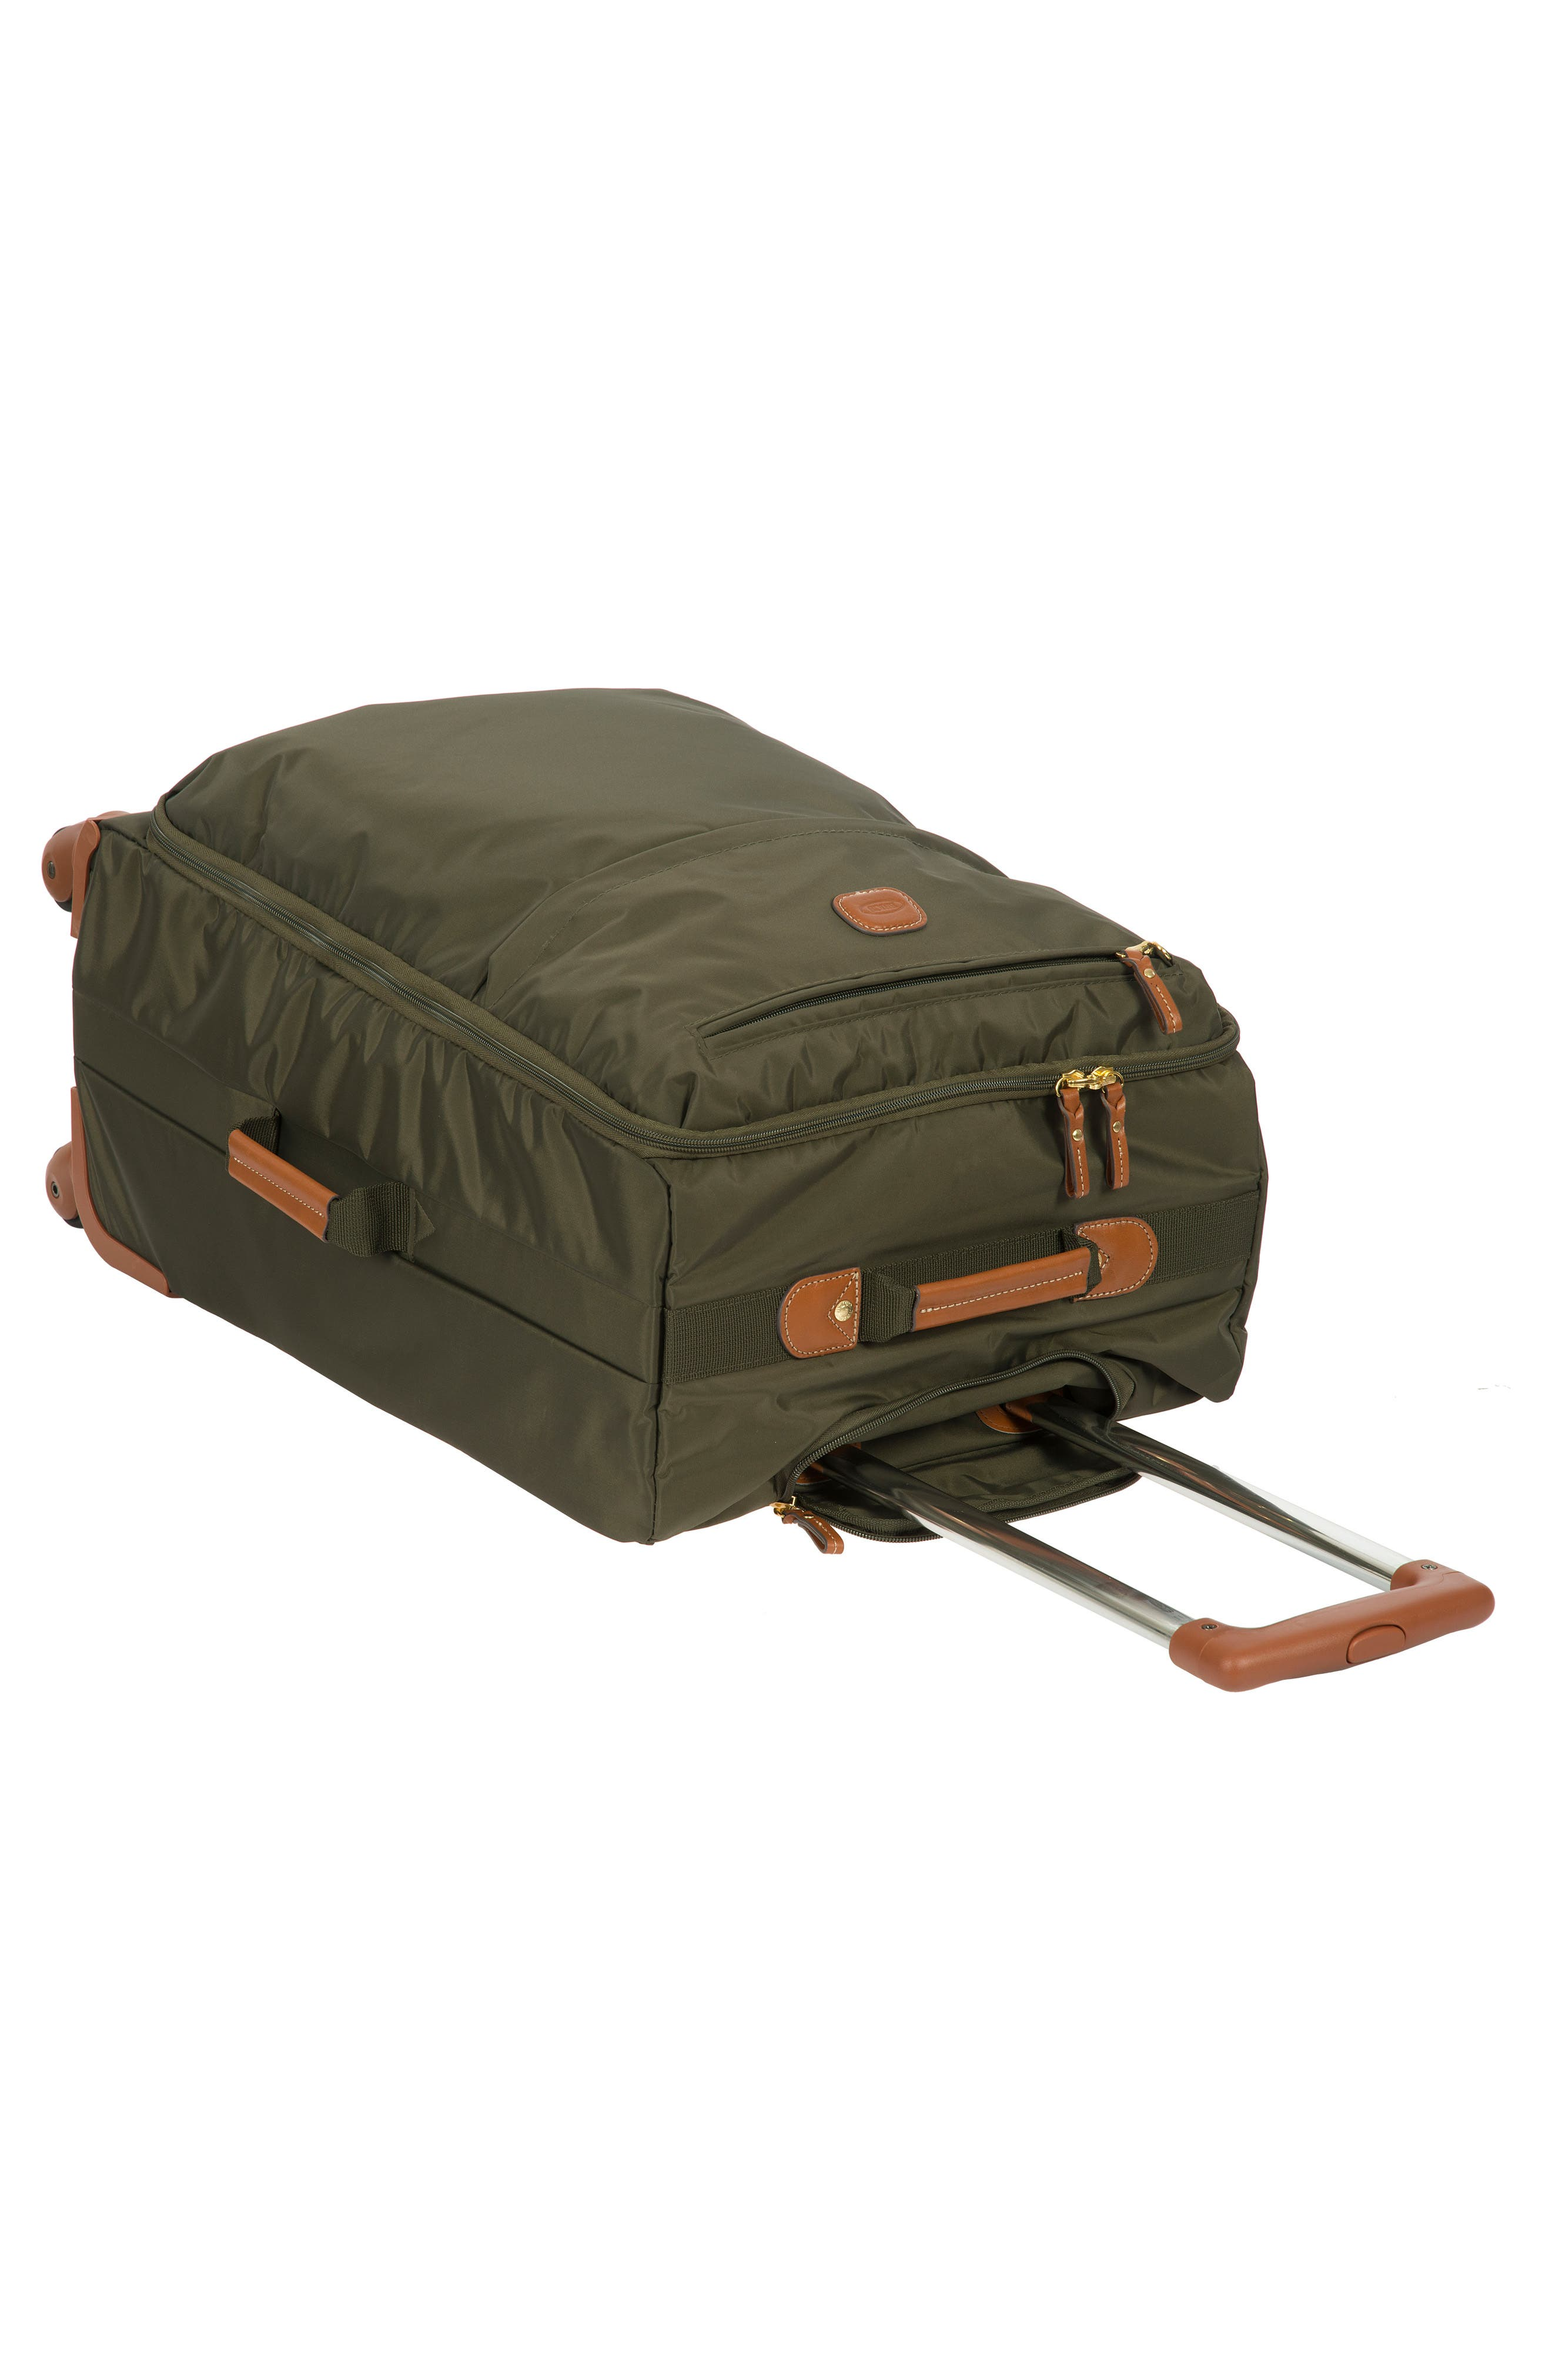 X-Bag 25-Inch Spinner Suitcase,                             Alternate thumbnail 12, color,                             OLIVE